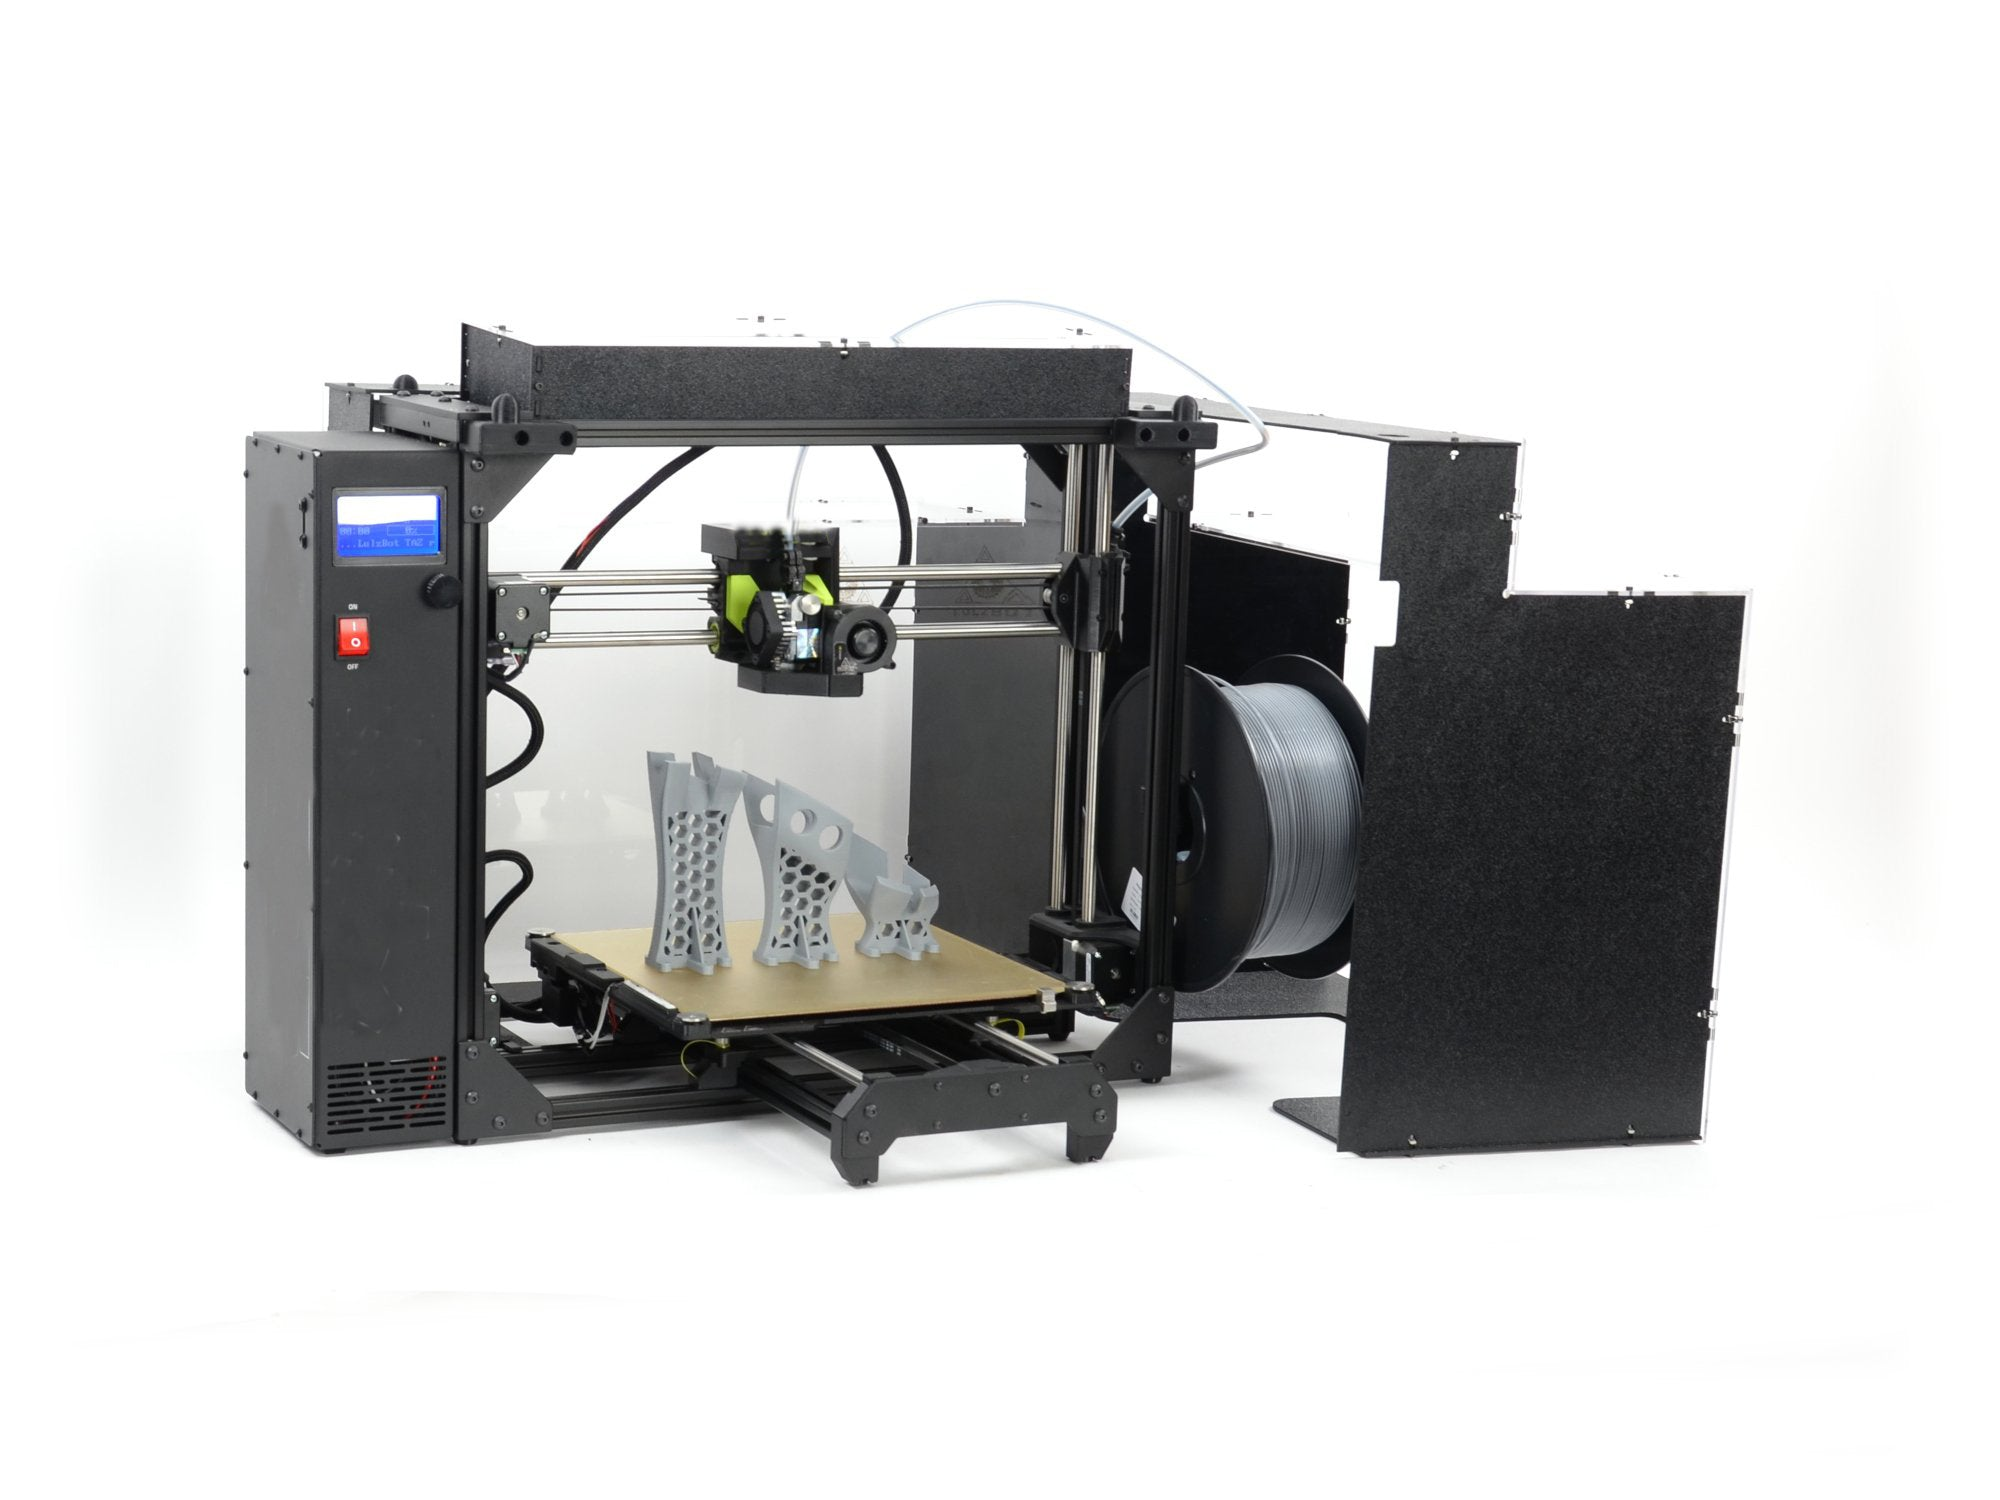 LulzBot® TAZ Pro and Workhorse Compatible ABS+ Safety Enclosure by Printed Solid